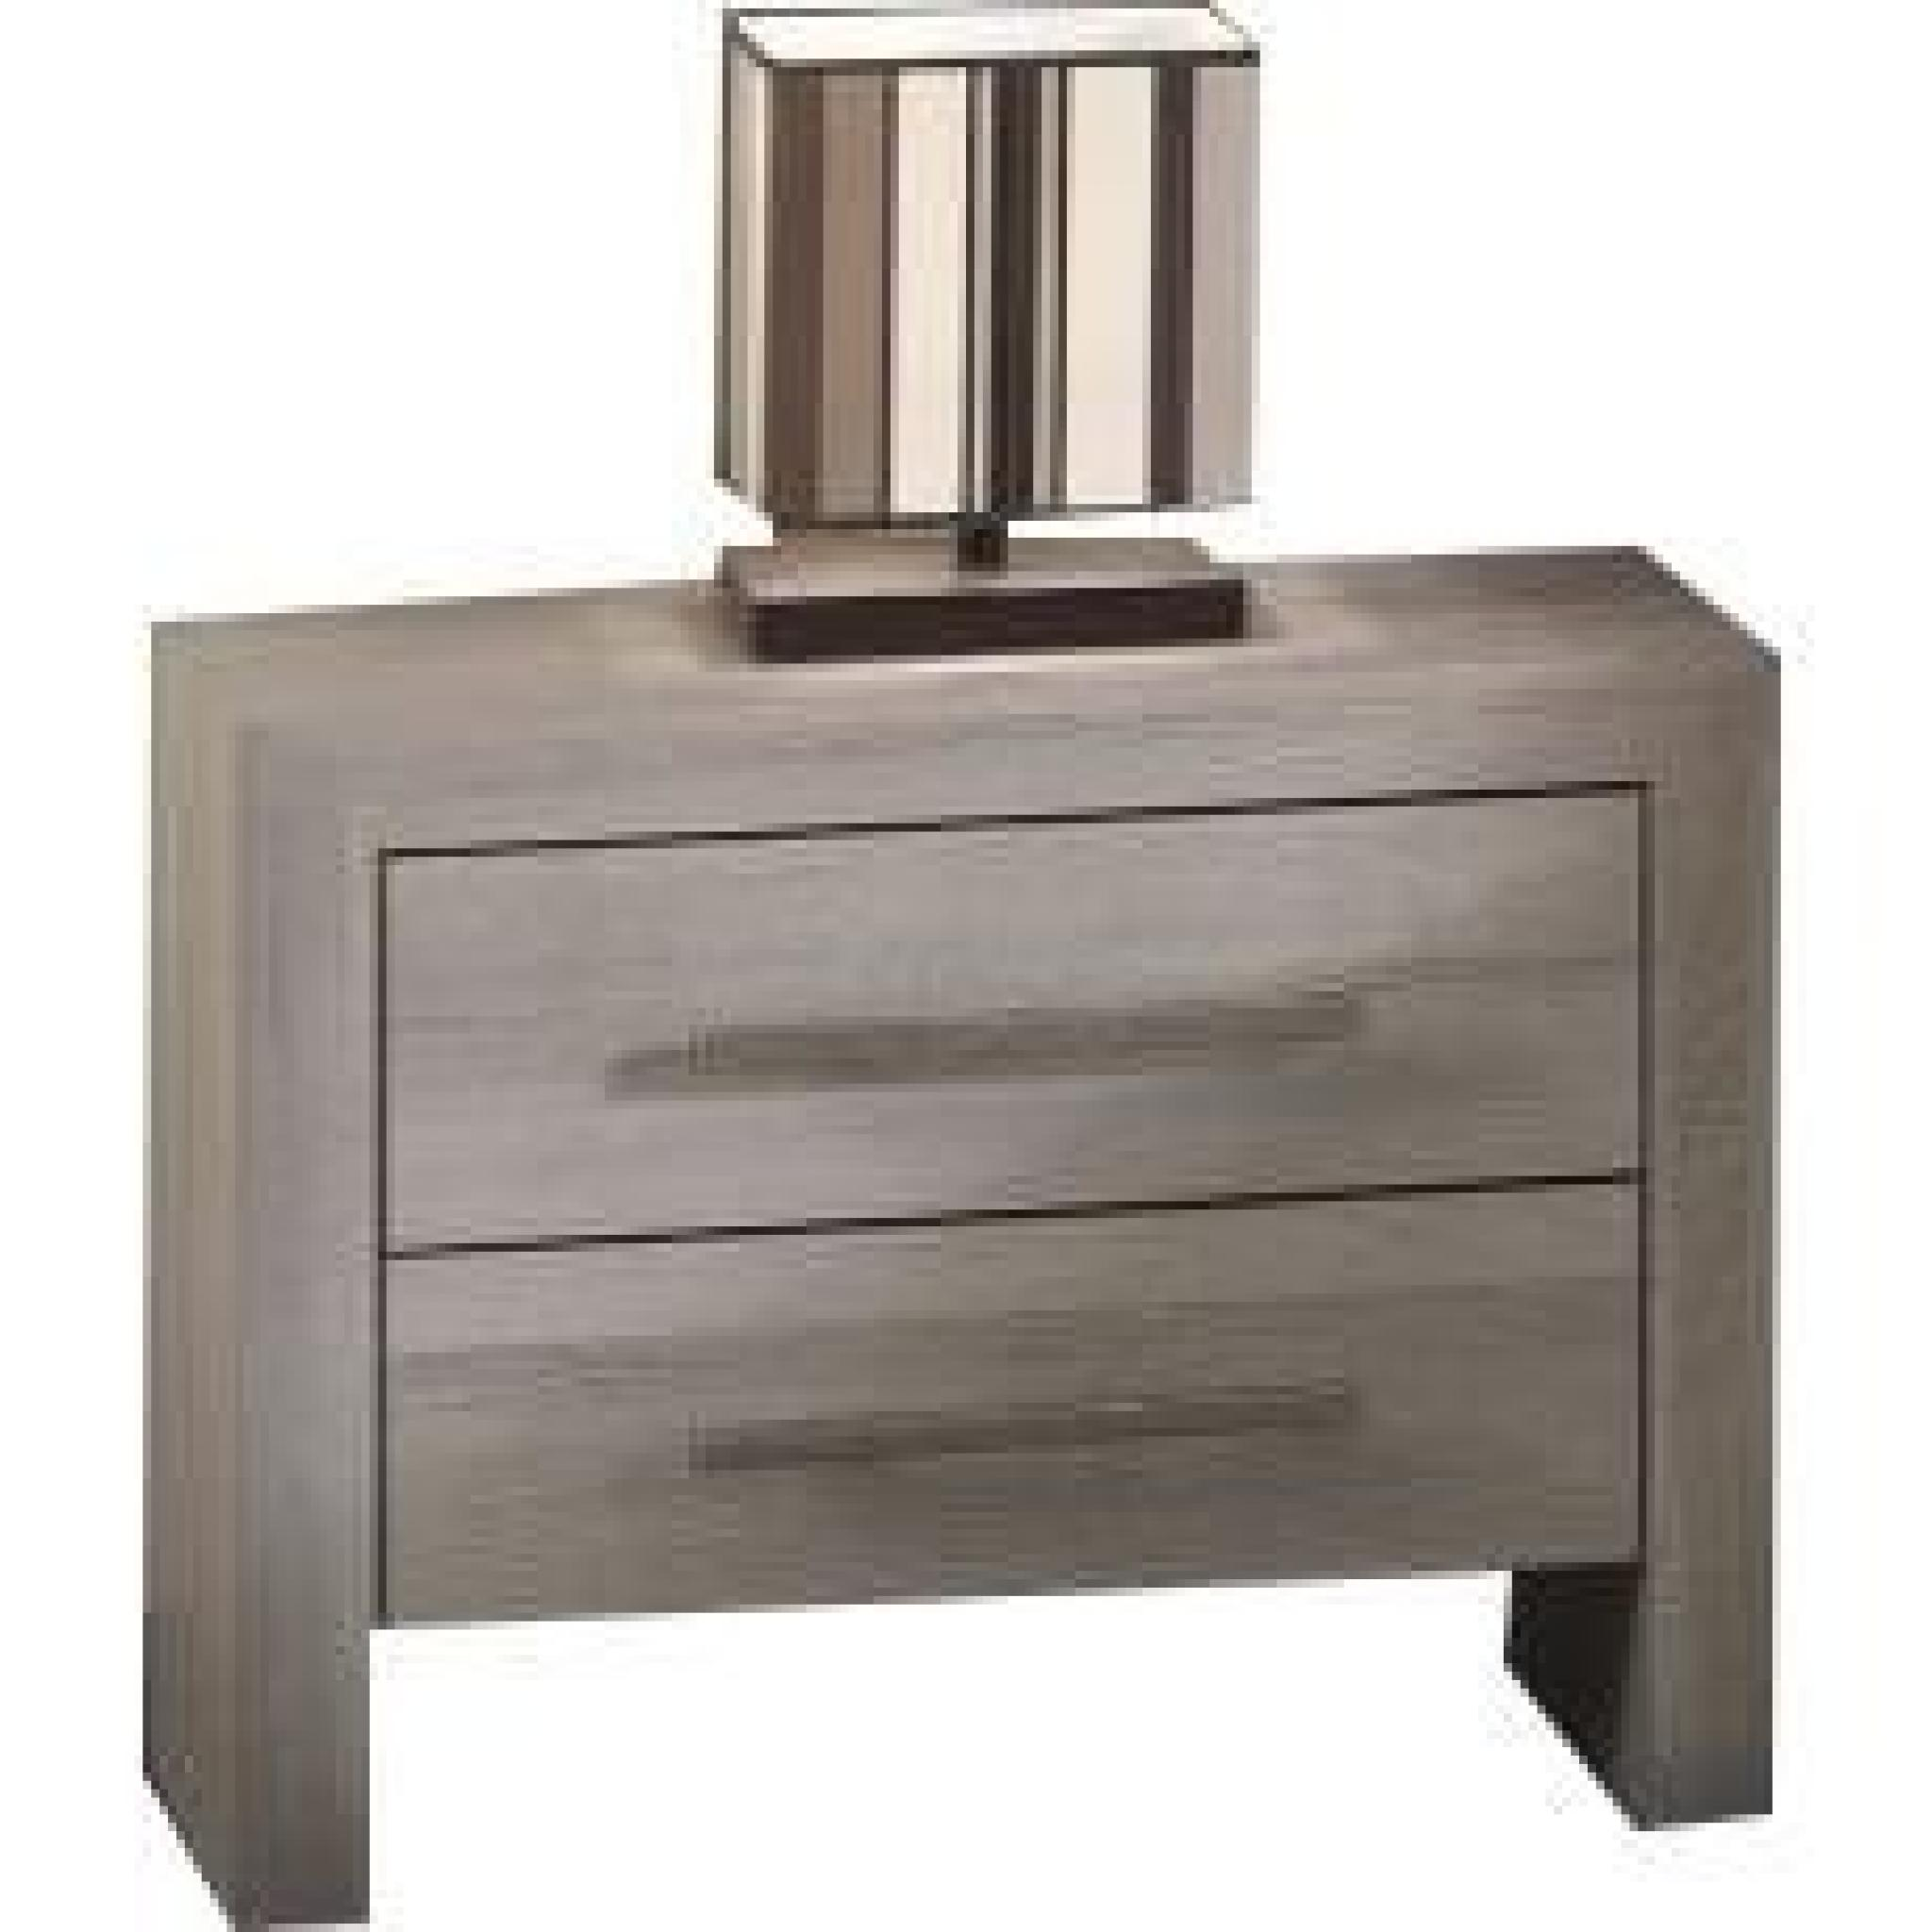 Table de chevet coloris ch ne gris achat vente table de chevet pas cher c - Table de chevet couleur taupe ...